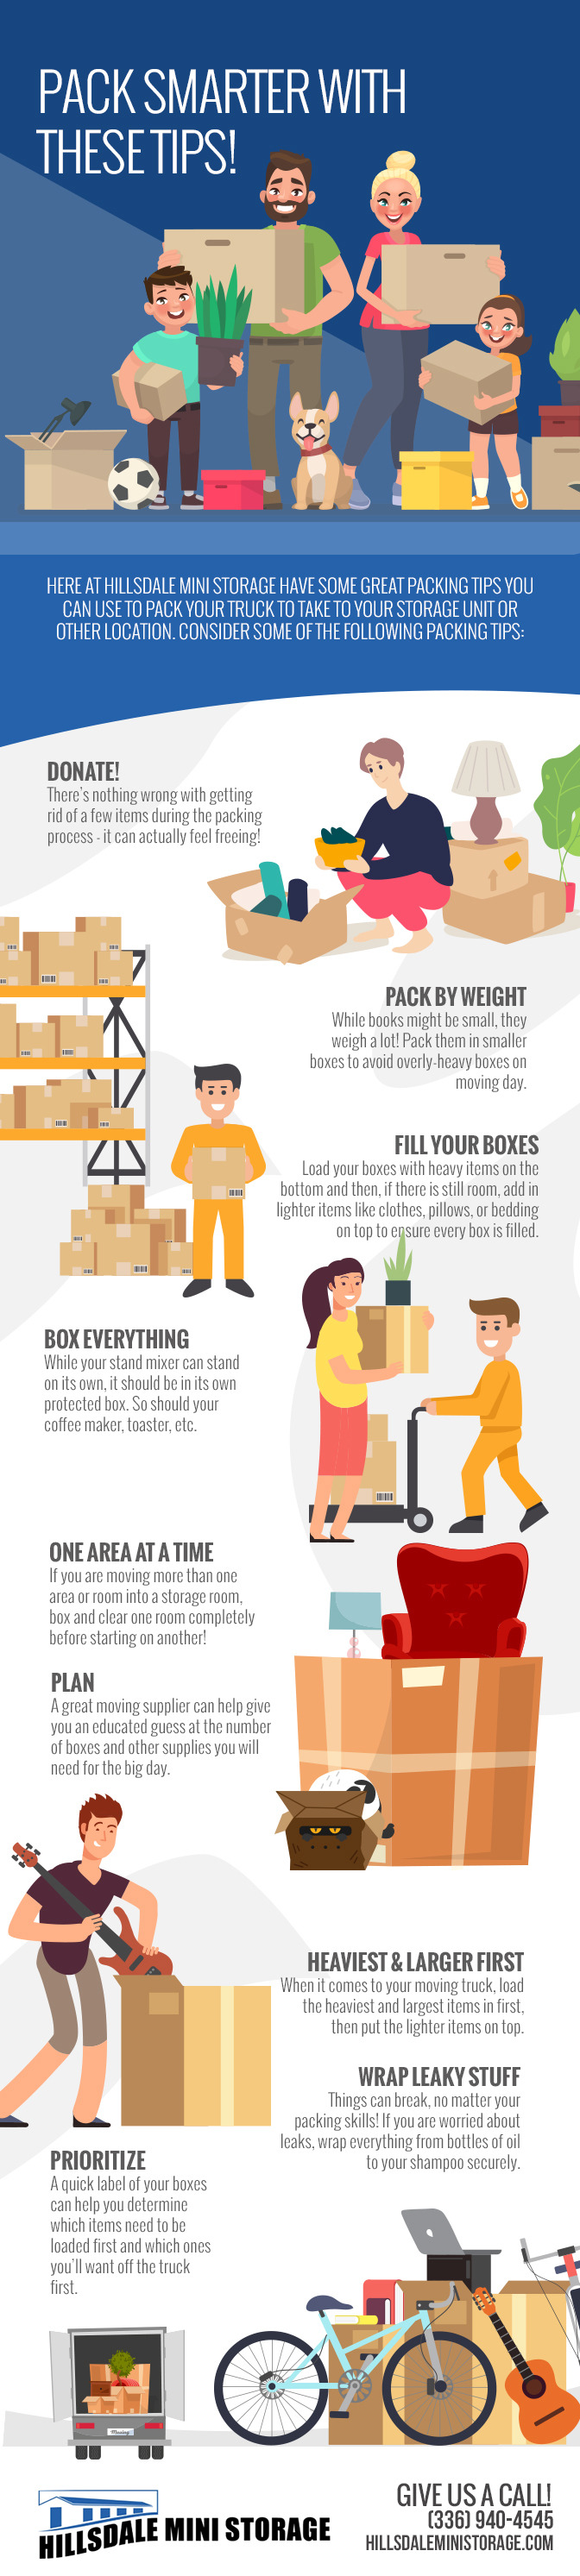 Pack Smarter with These Tips! [infographic]